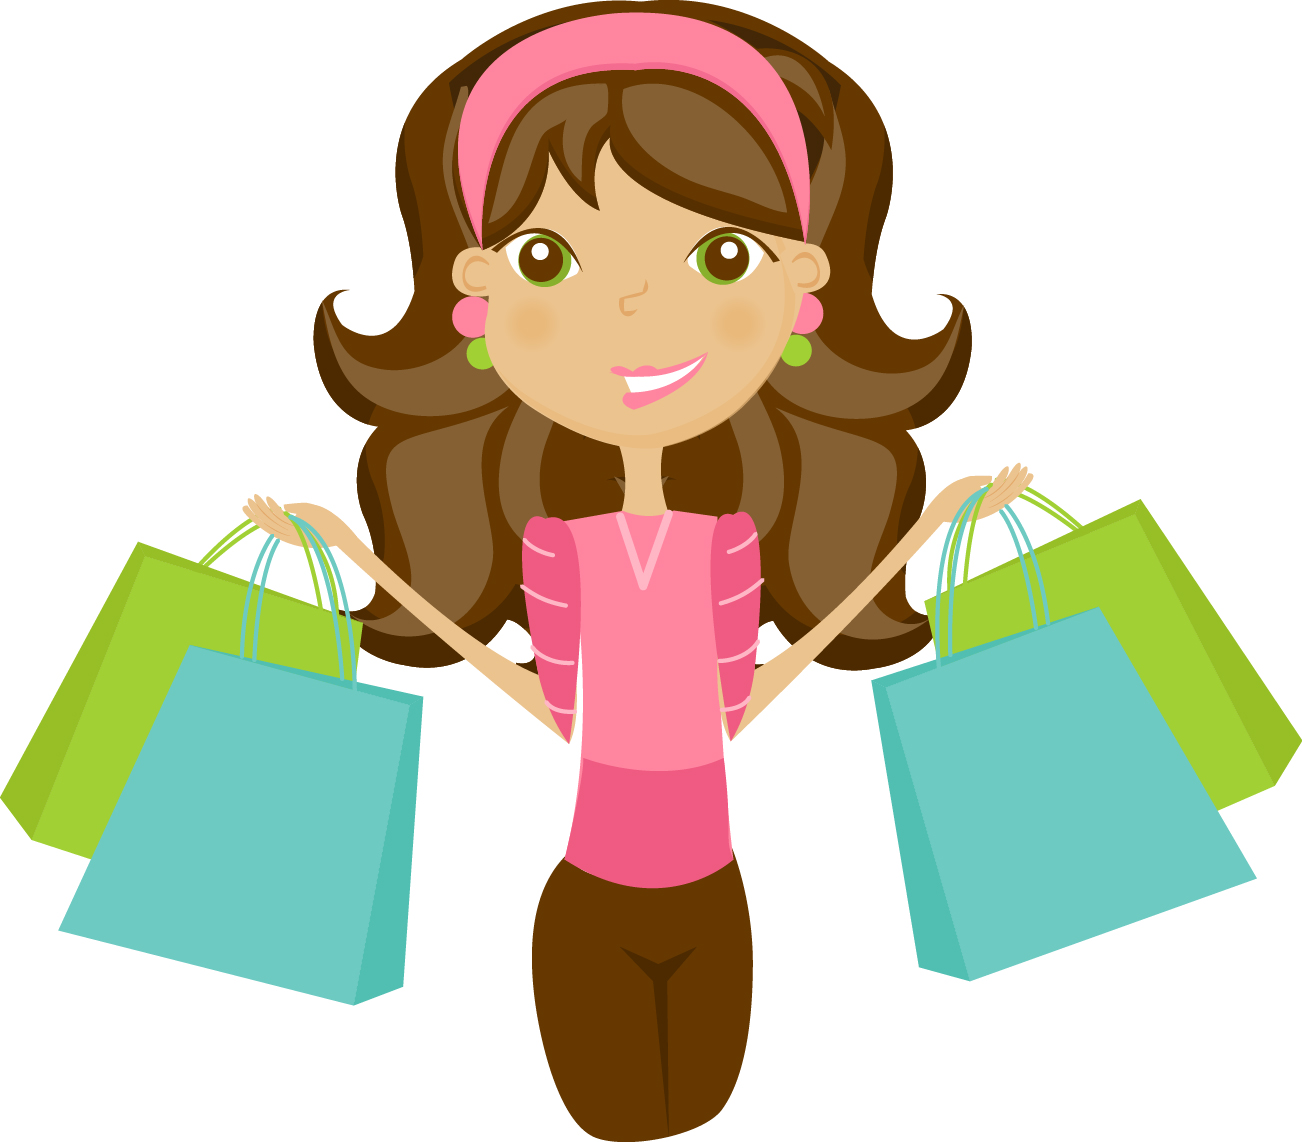 Shopping clipart.